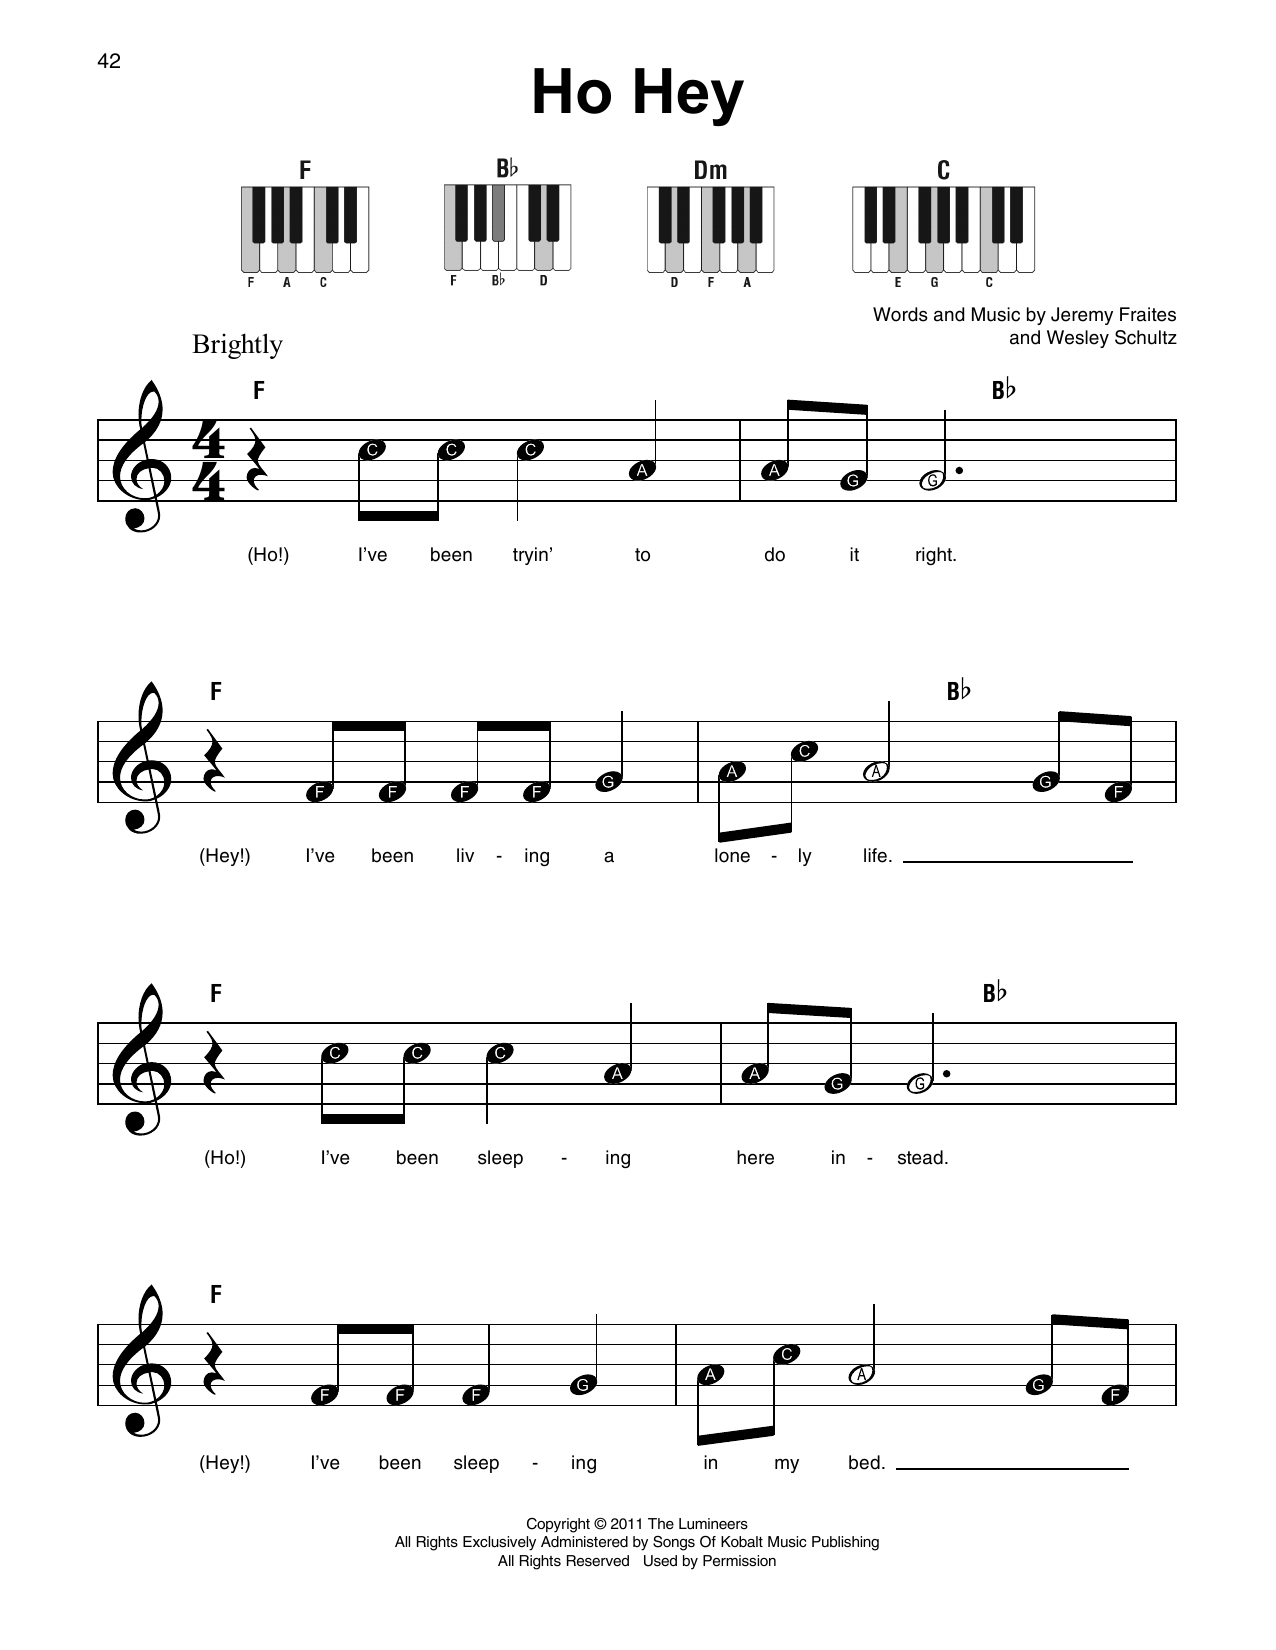 Ho Hey Chords Ho Hey Sheet Music The Lumineers Super Easy Piano